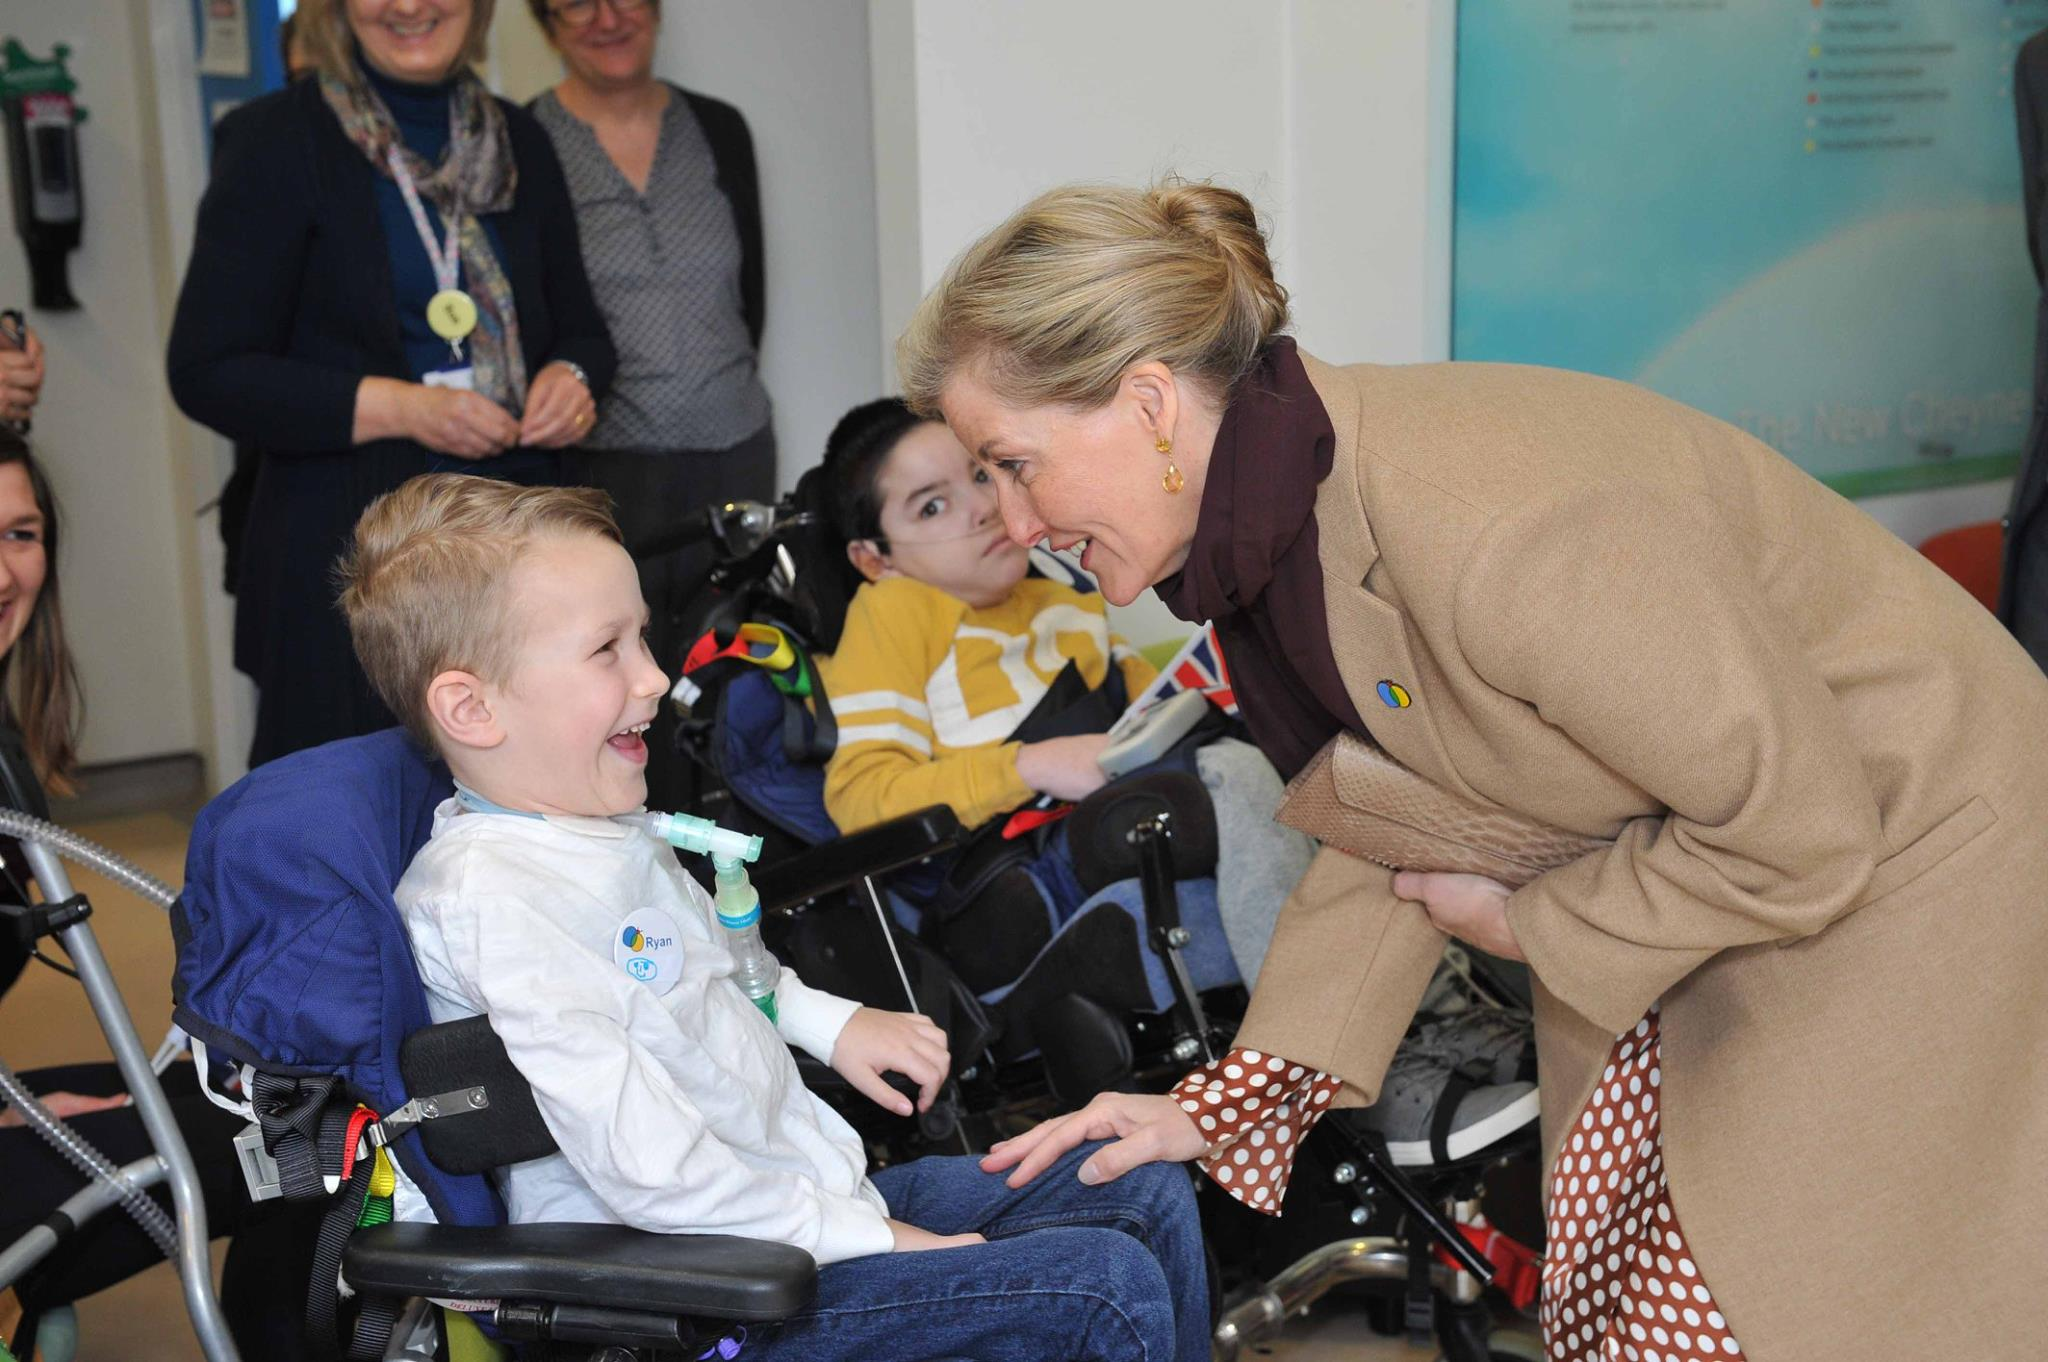 HRH The Countess of Wessex meets a child at the rehabilitation centre.